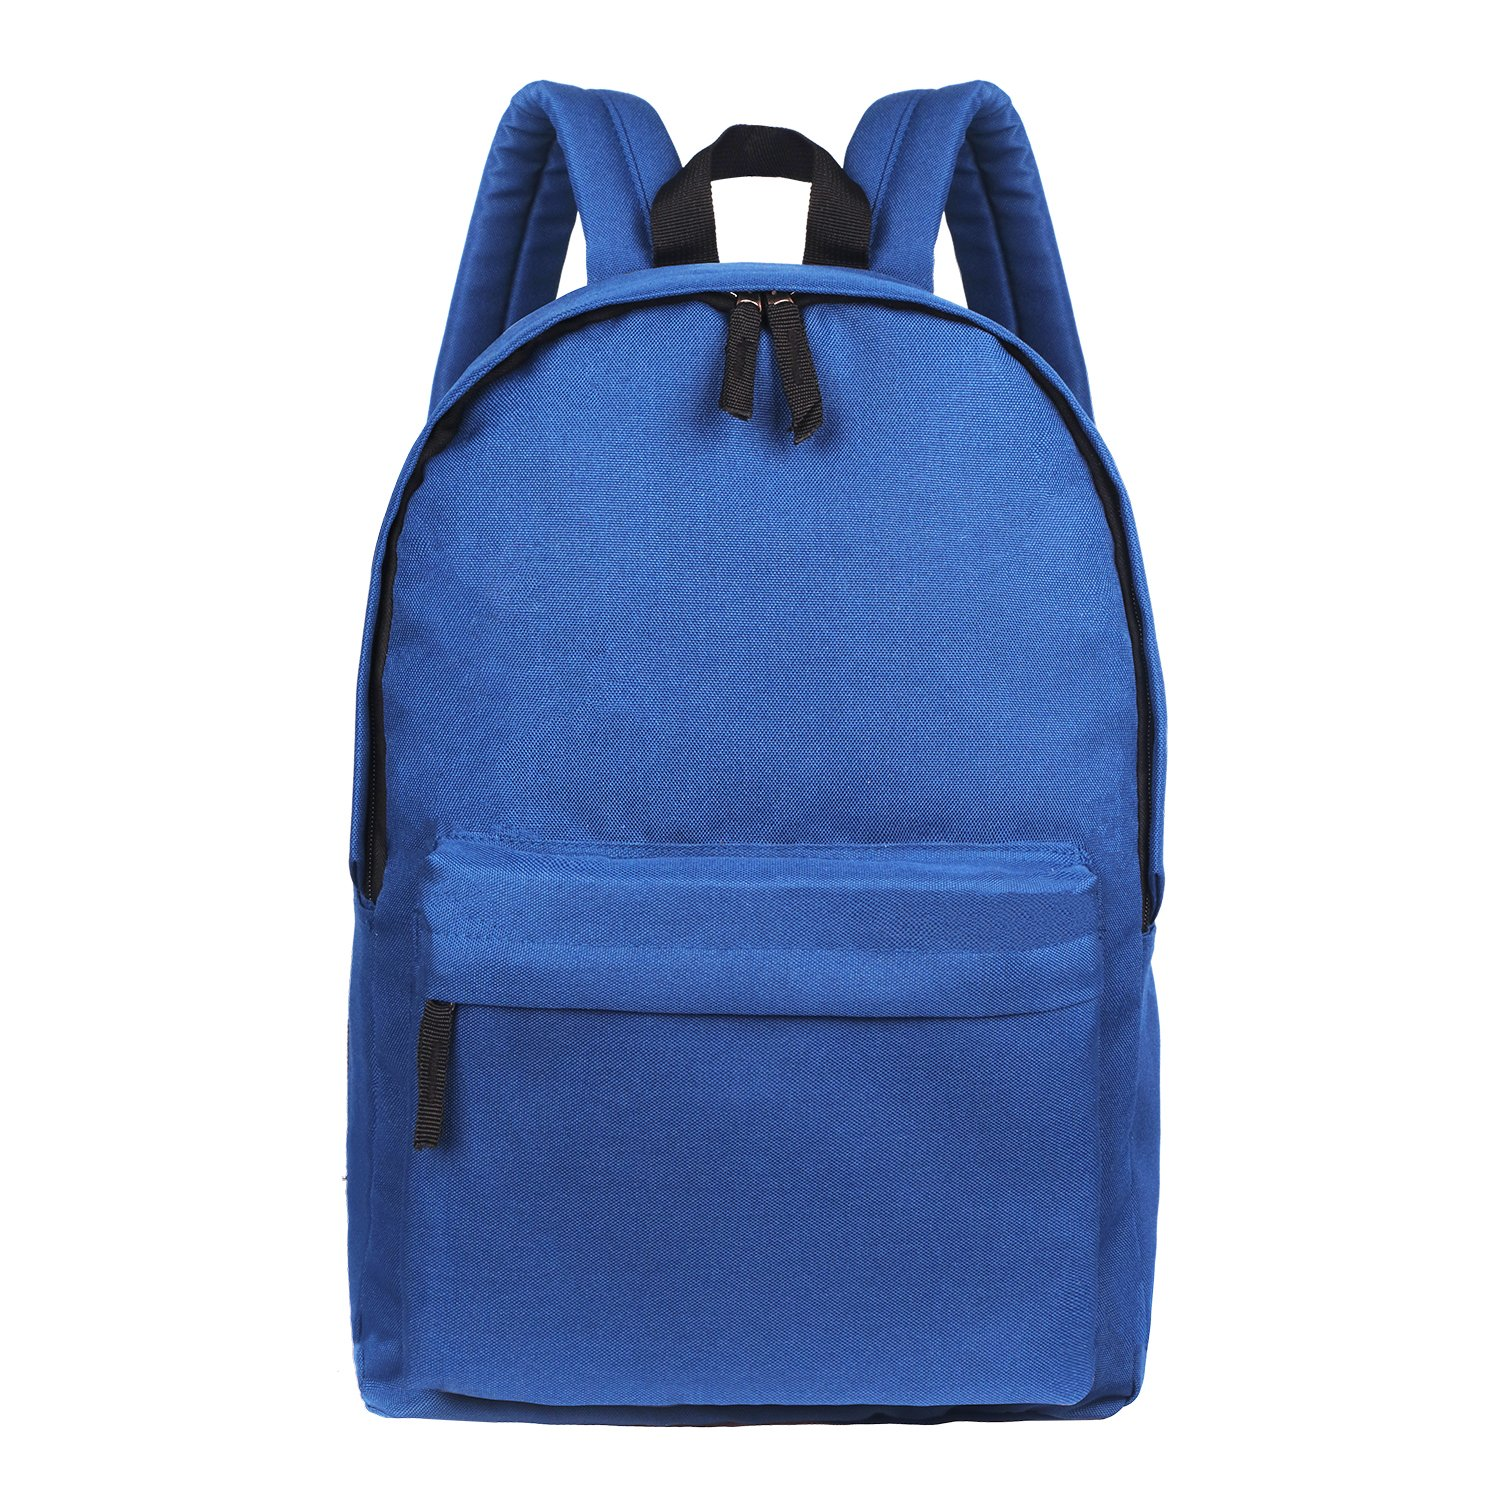 Blue Simple School Bag For Kid Lightweight Utility Elementary Backpack Organizer